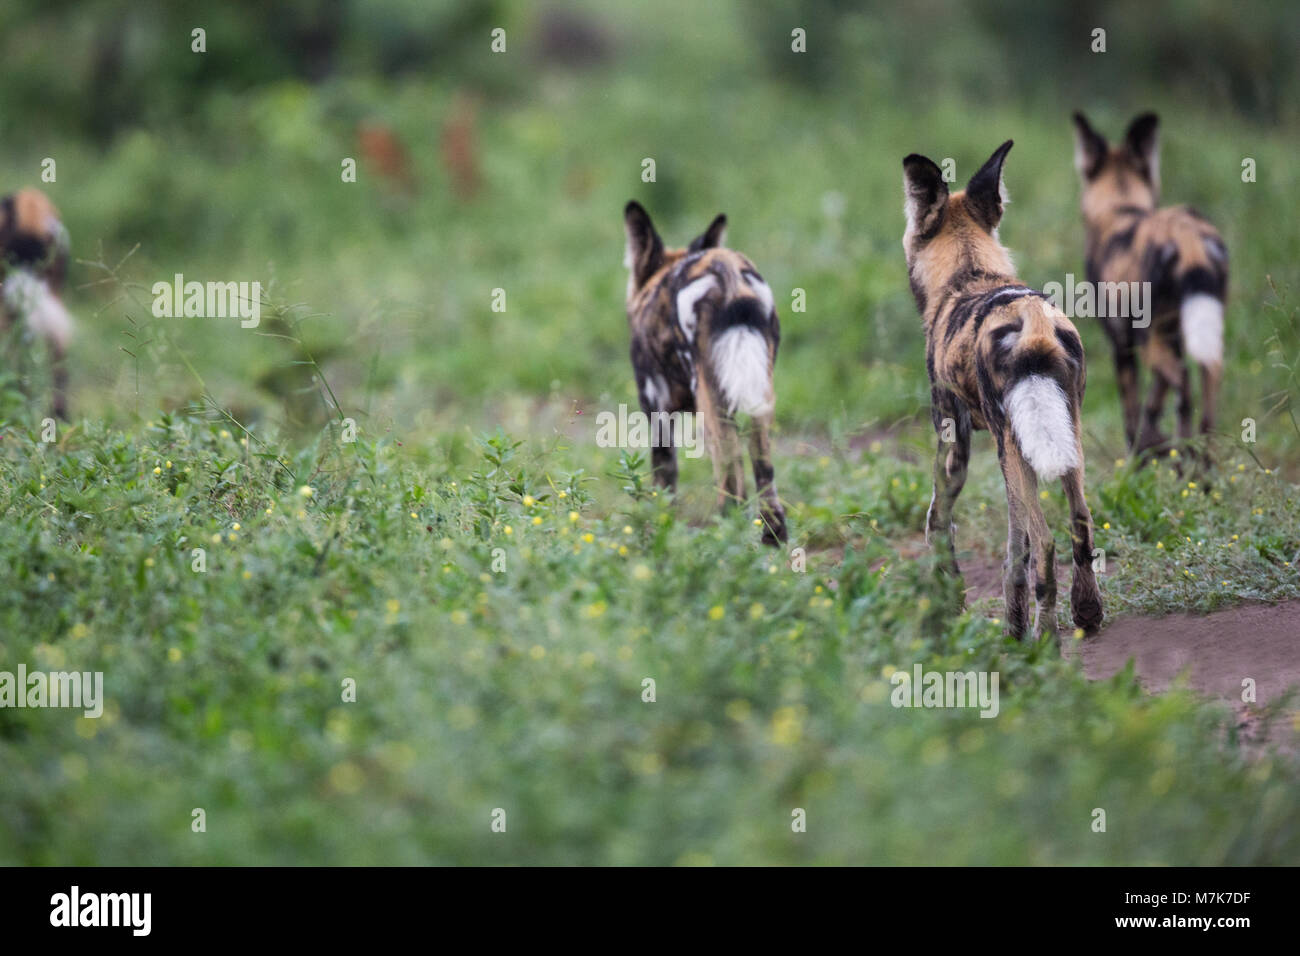 African Hunting Dog, or African Wild Dog or African Painted Dog or Painted Wolf (Lycaon pictus). Senses of sight, - Stock Image